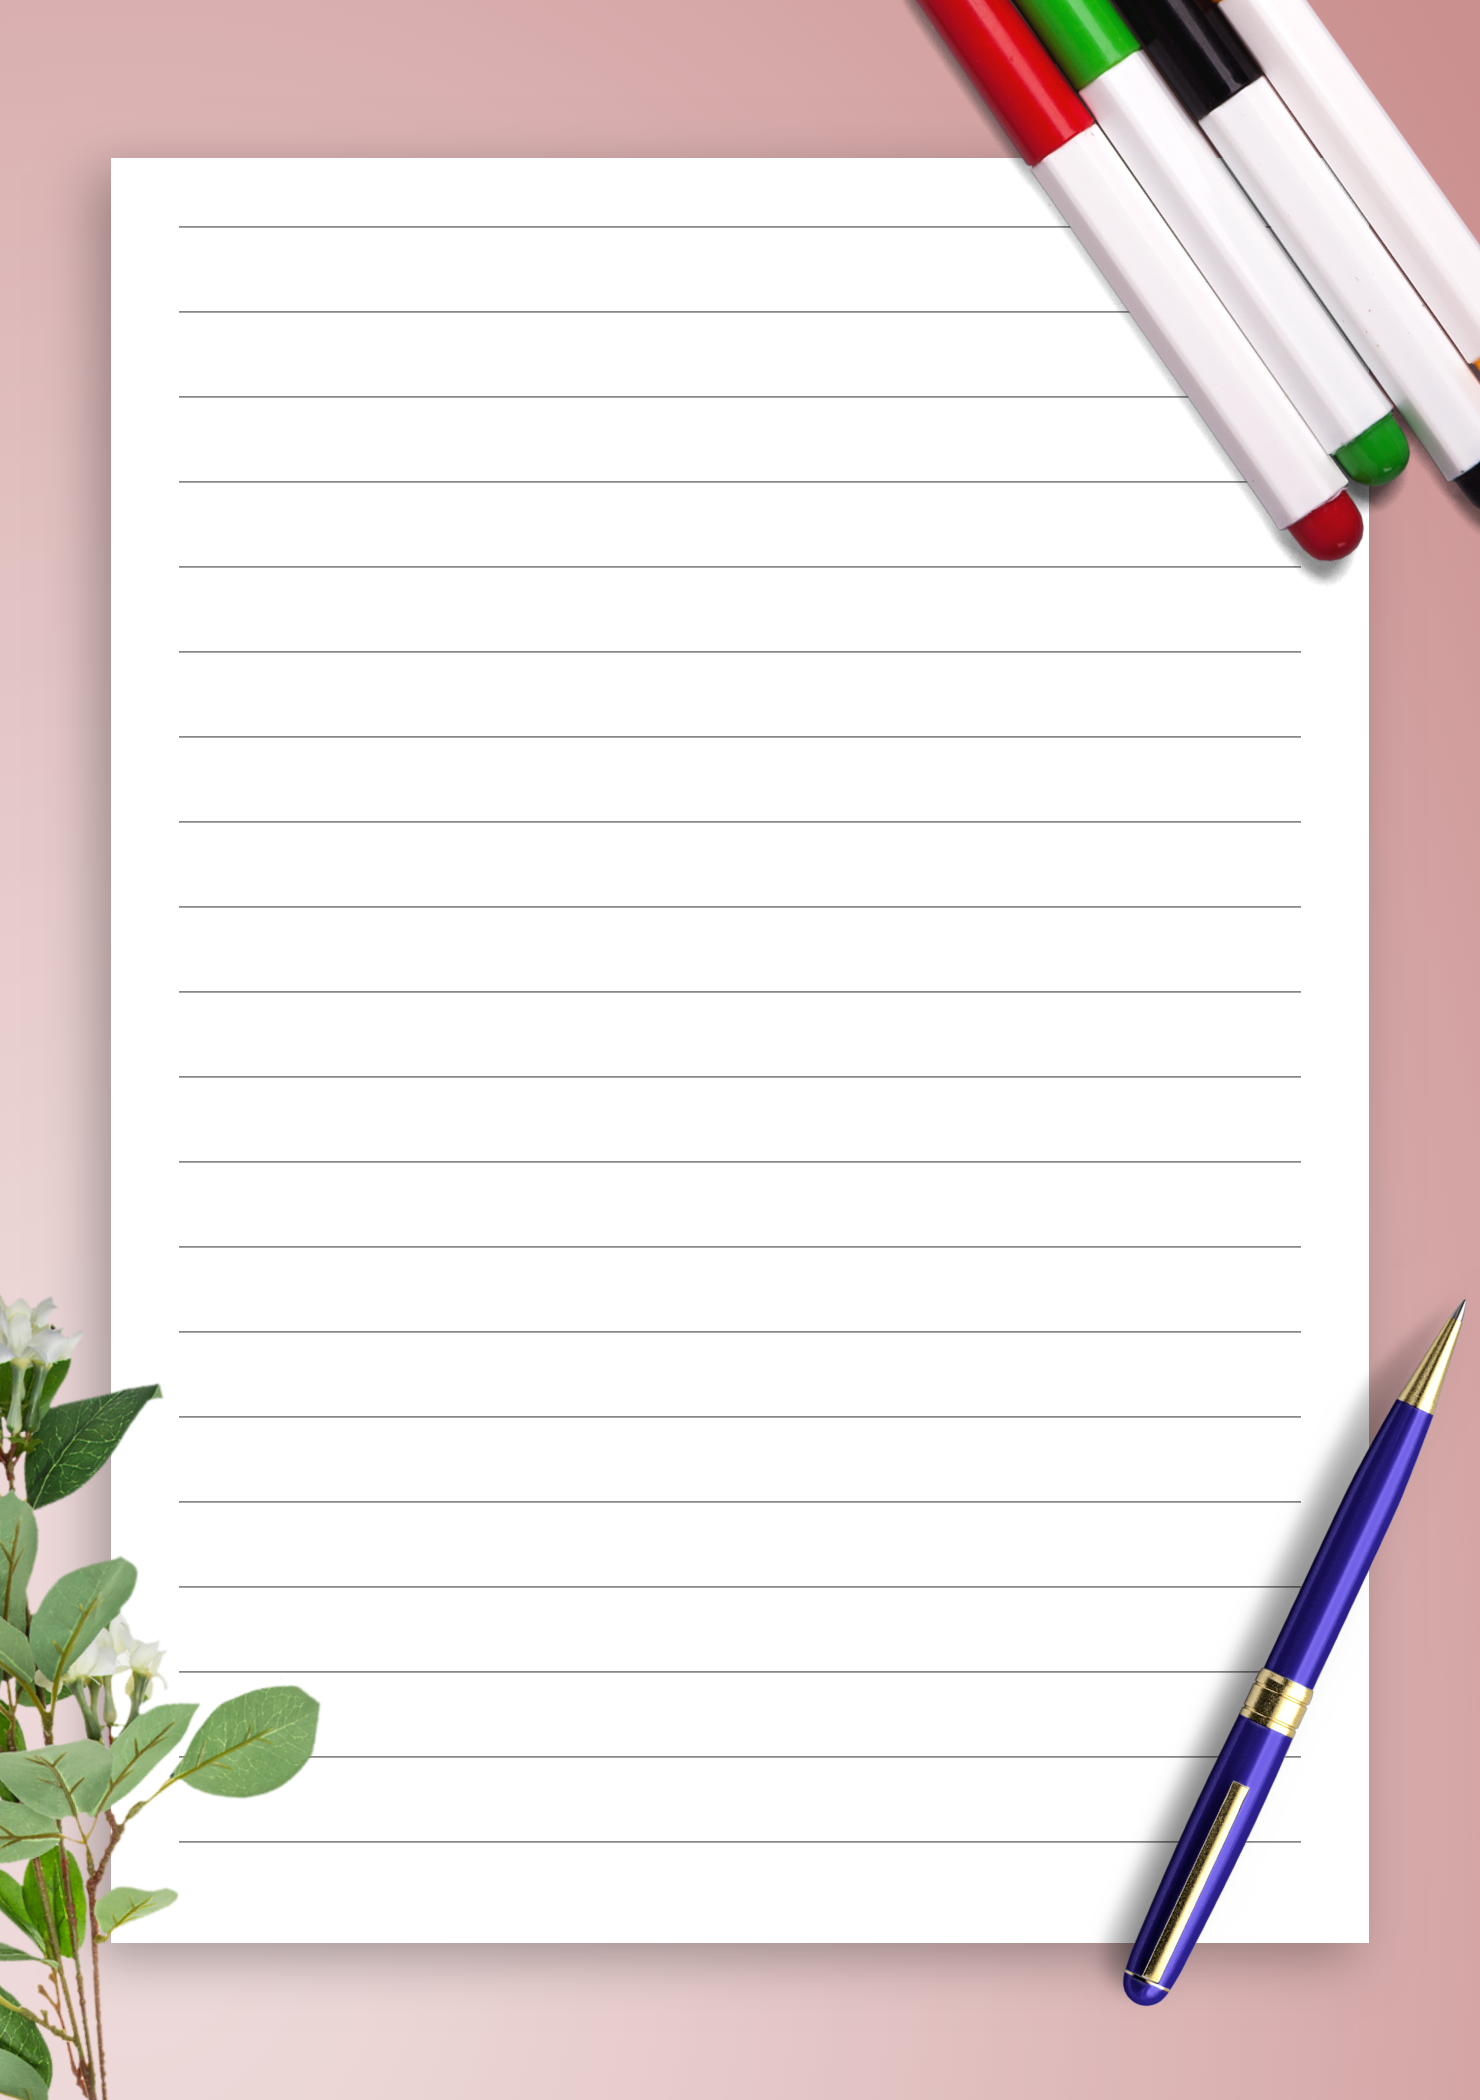 picture regarding Free Printable Lined Paper referred to as Absolutely free Printable Protected Paper Template 10mm PDF Down load